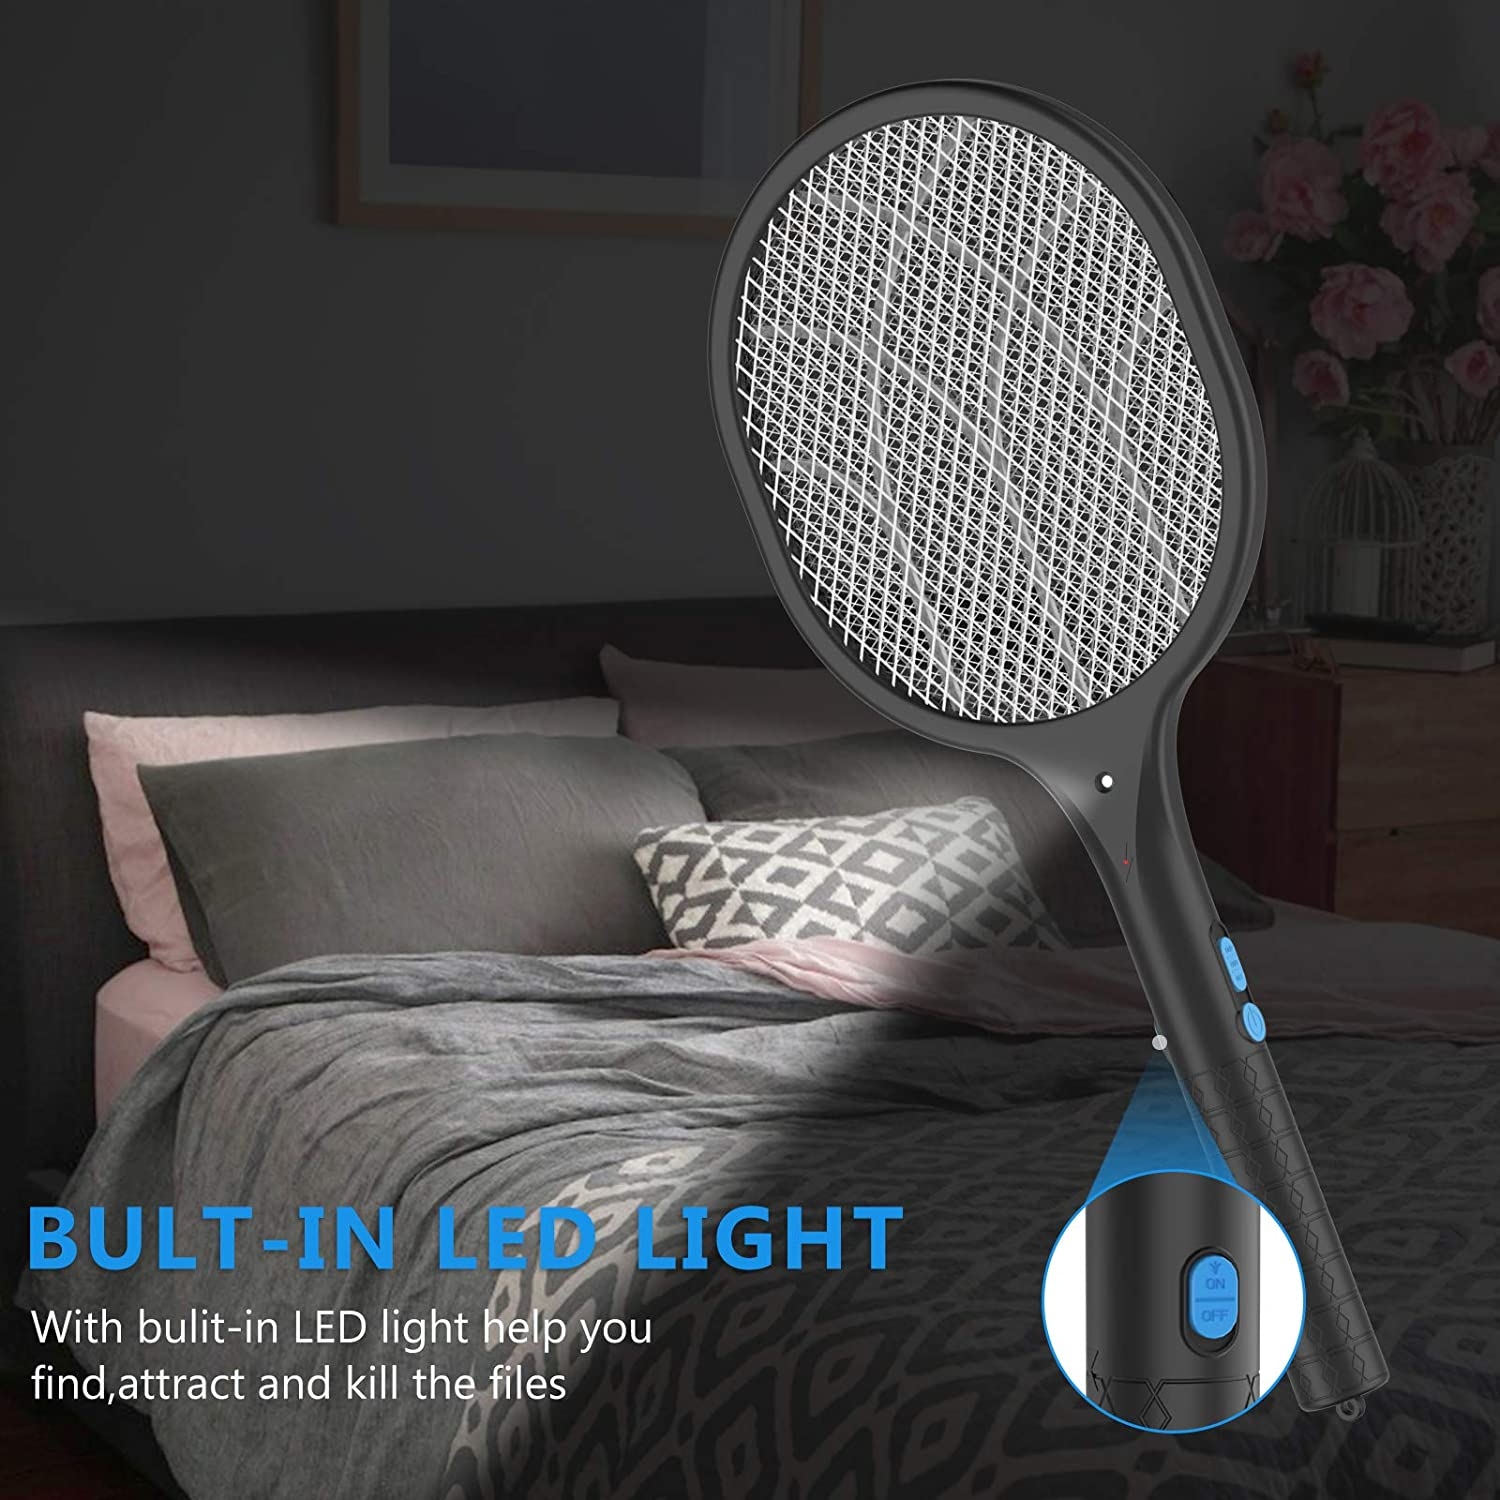 Black BOYON Bug Zapper Mosquito Killer Electric Fly Swatter, Rechargeable Mosquitoes Lamp /& Racket 2 in 1 Handheld Fly Zapper for Home and Outdoor Safe to Touch with 3-Layer Safety Mesh